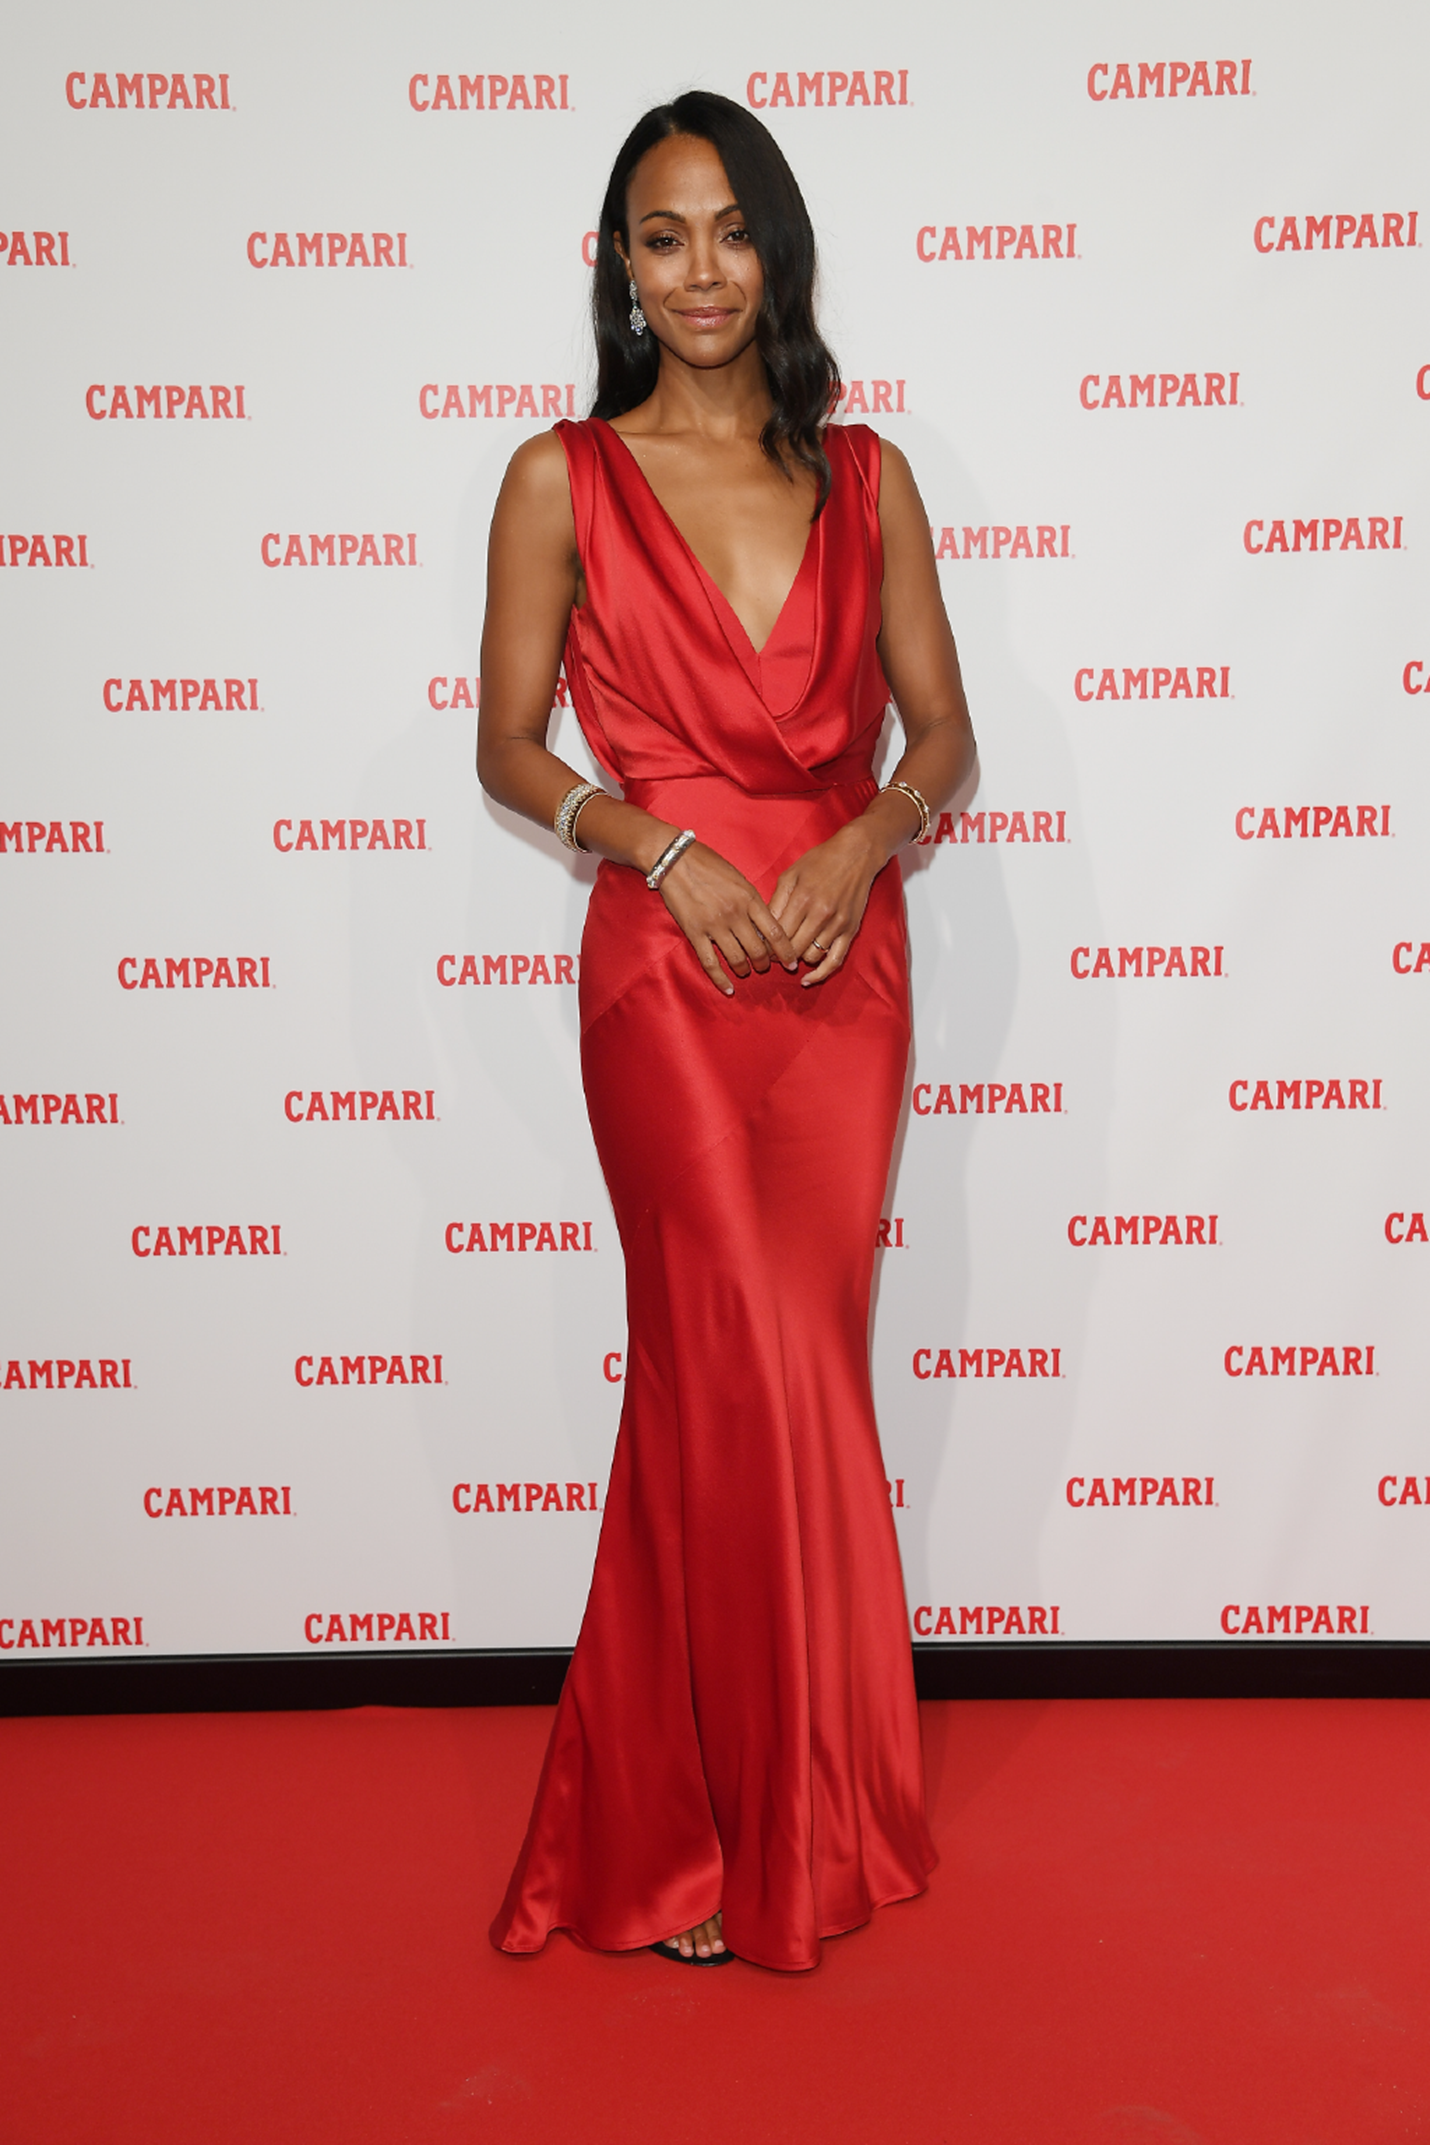 Zoe Saldana attends the premiere for the Campari Red Diaries short movie, 'The Legend of Red Hand' wearing dress by .Alberta Ferretti, earrings by Buccellati and .shoes by Stuart Weitzman Campari Red Diaries - Red Carpet Premiere on January 30, 2018 in Milan, Italy. (Photo by Venturelli/Getty Images for Campari)